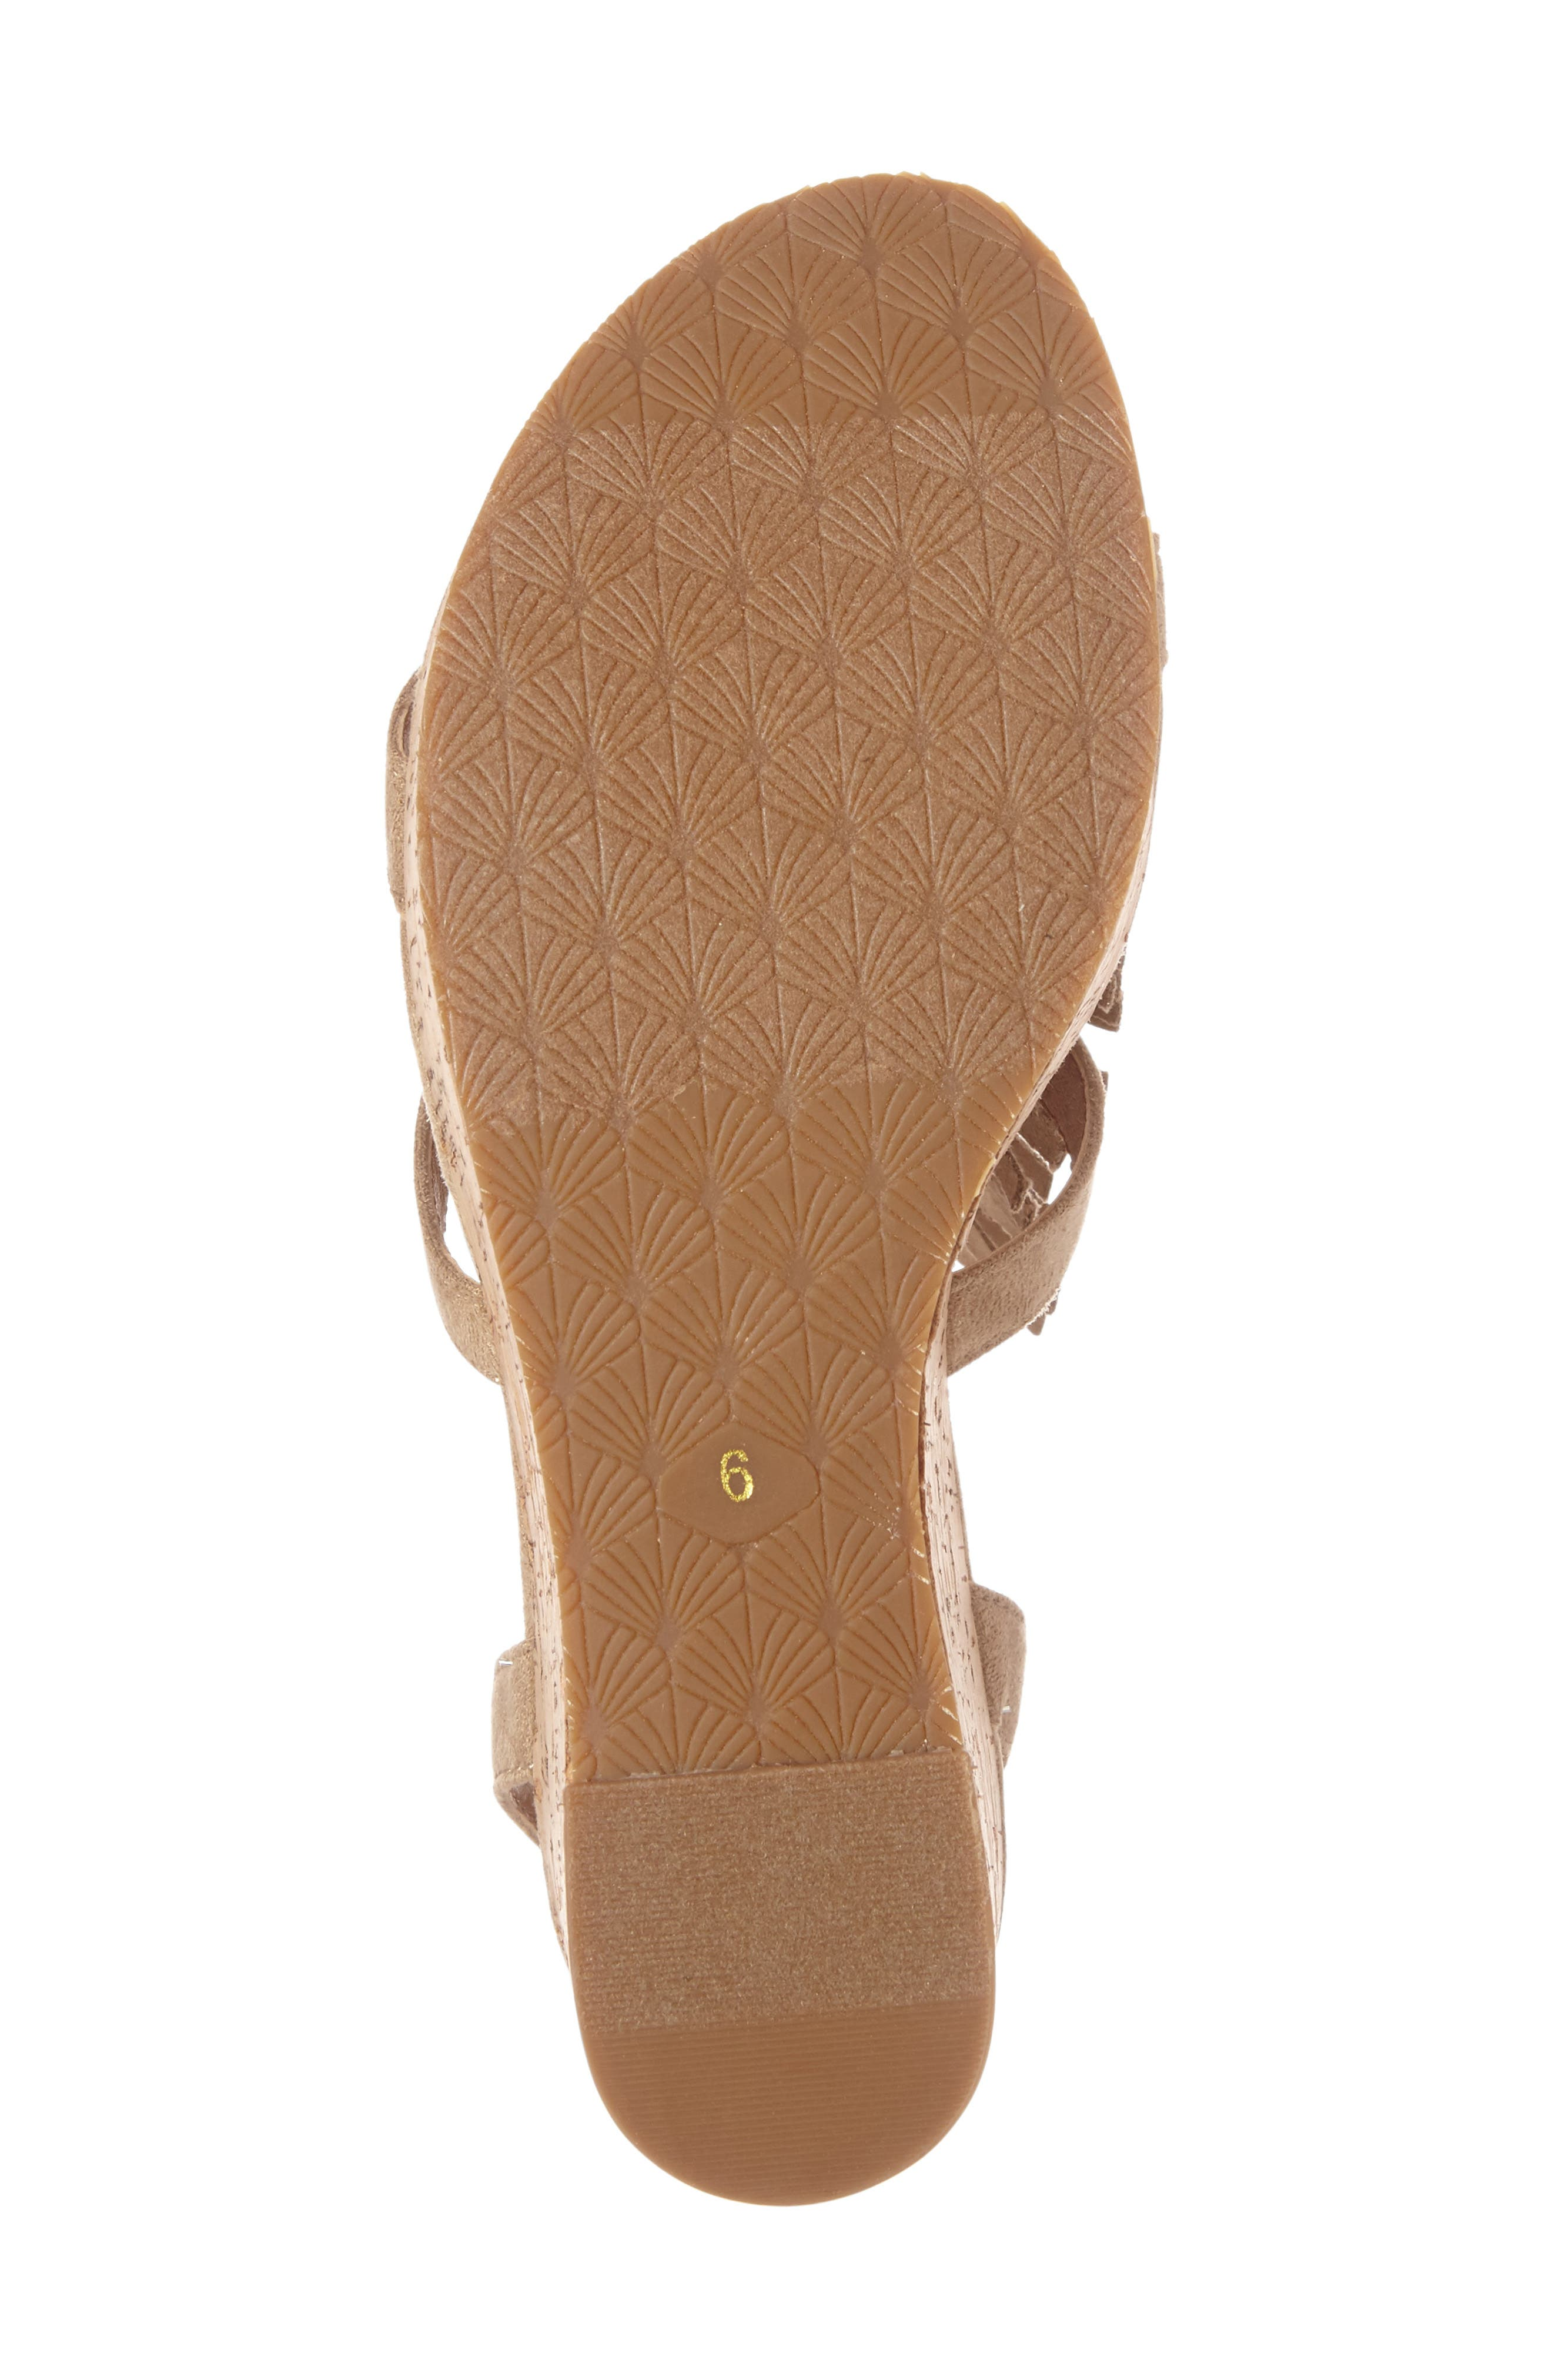 Unbridled Lolita Wedge Sandal,                             Alternate thumbnail 7, color,